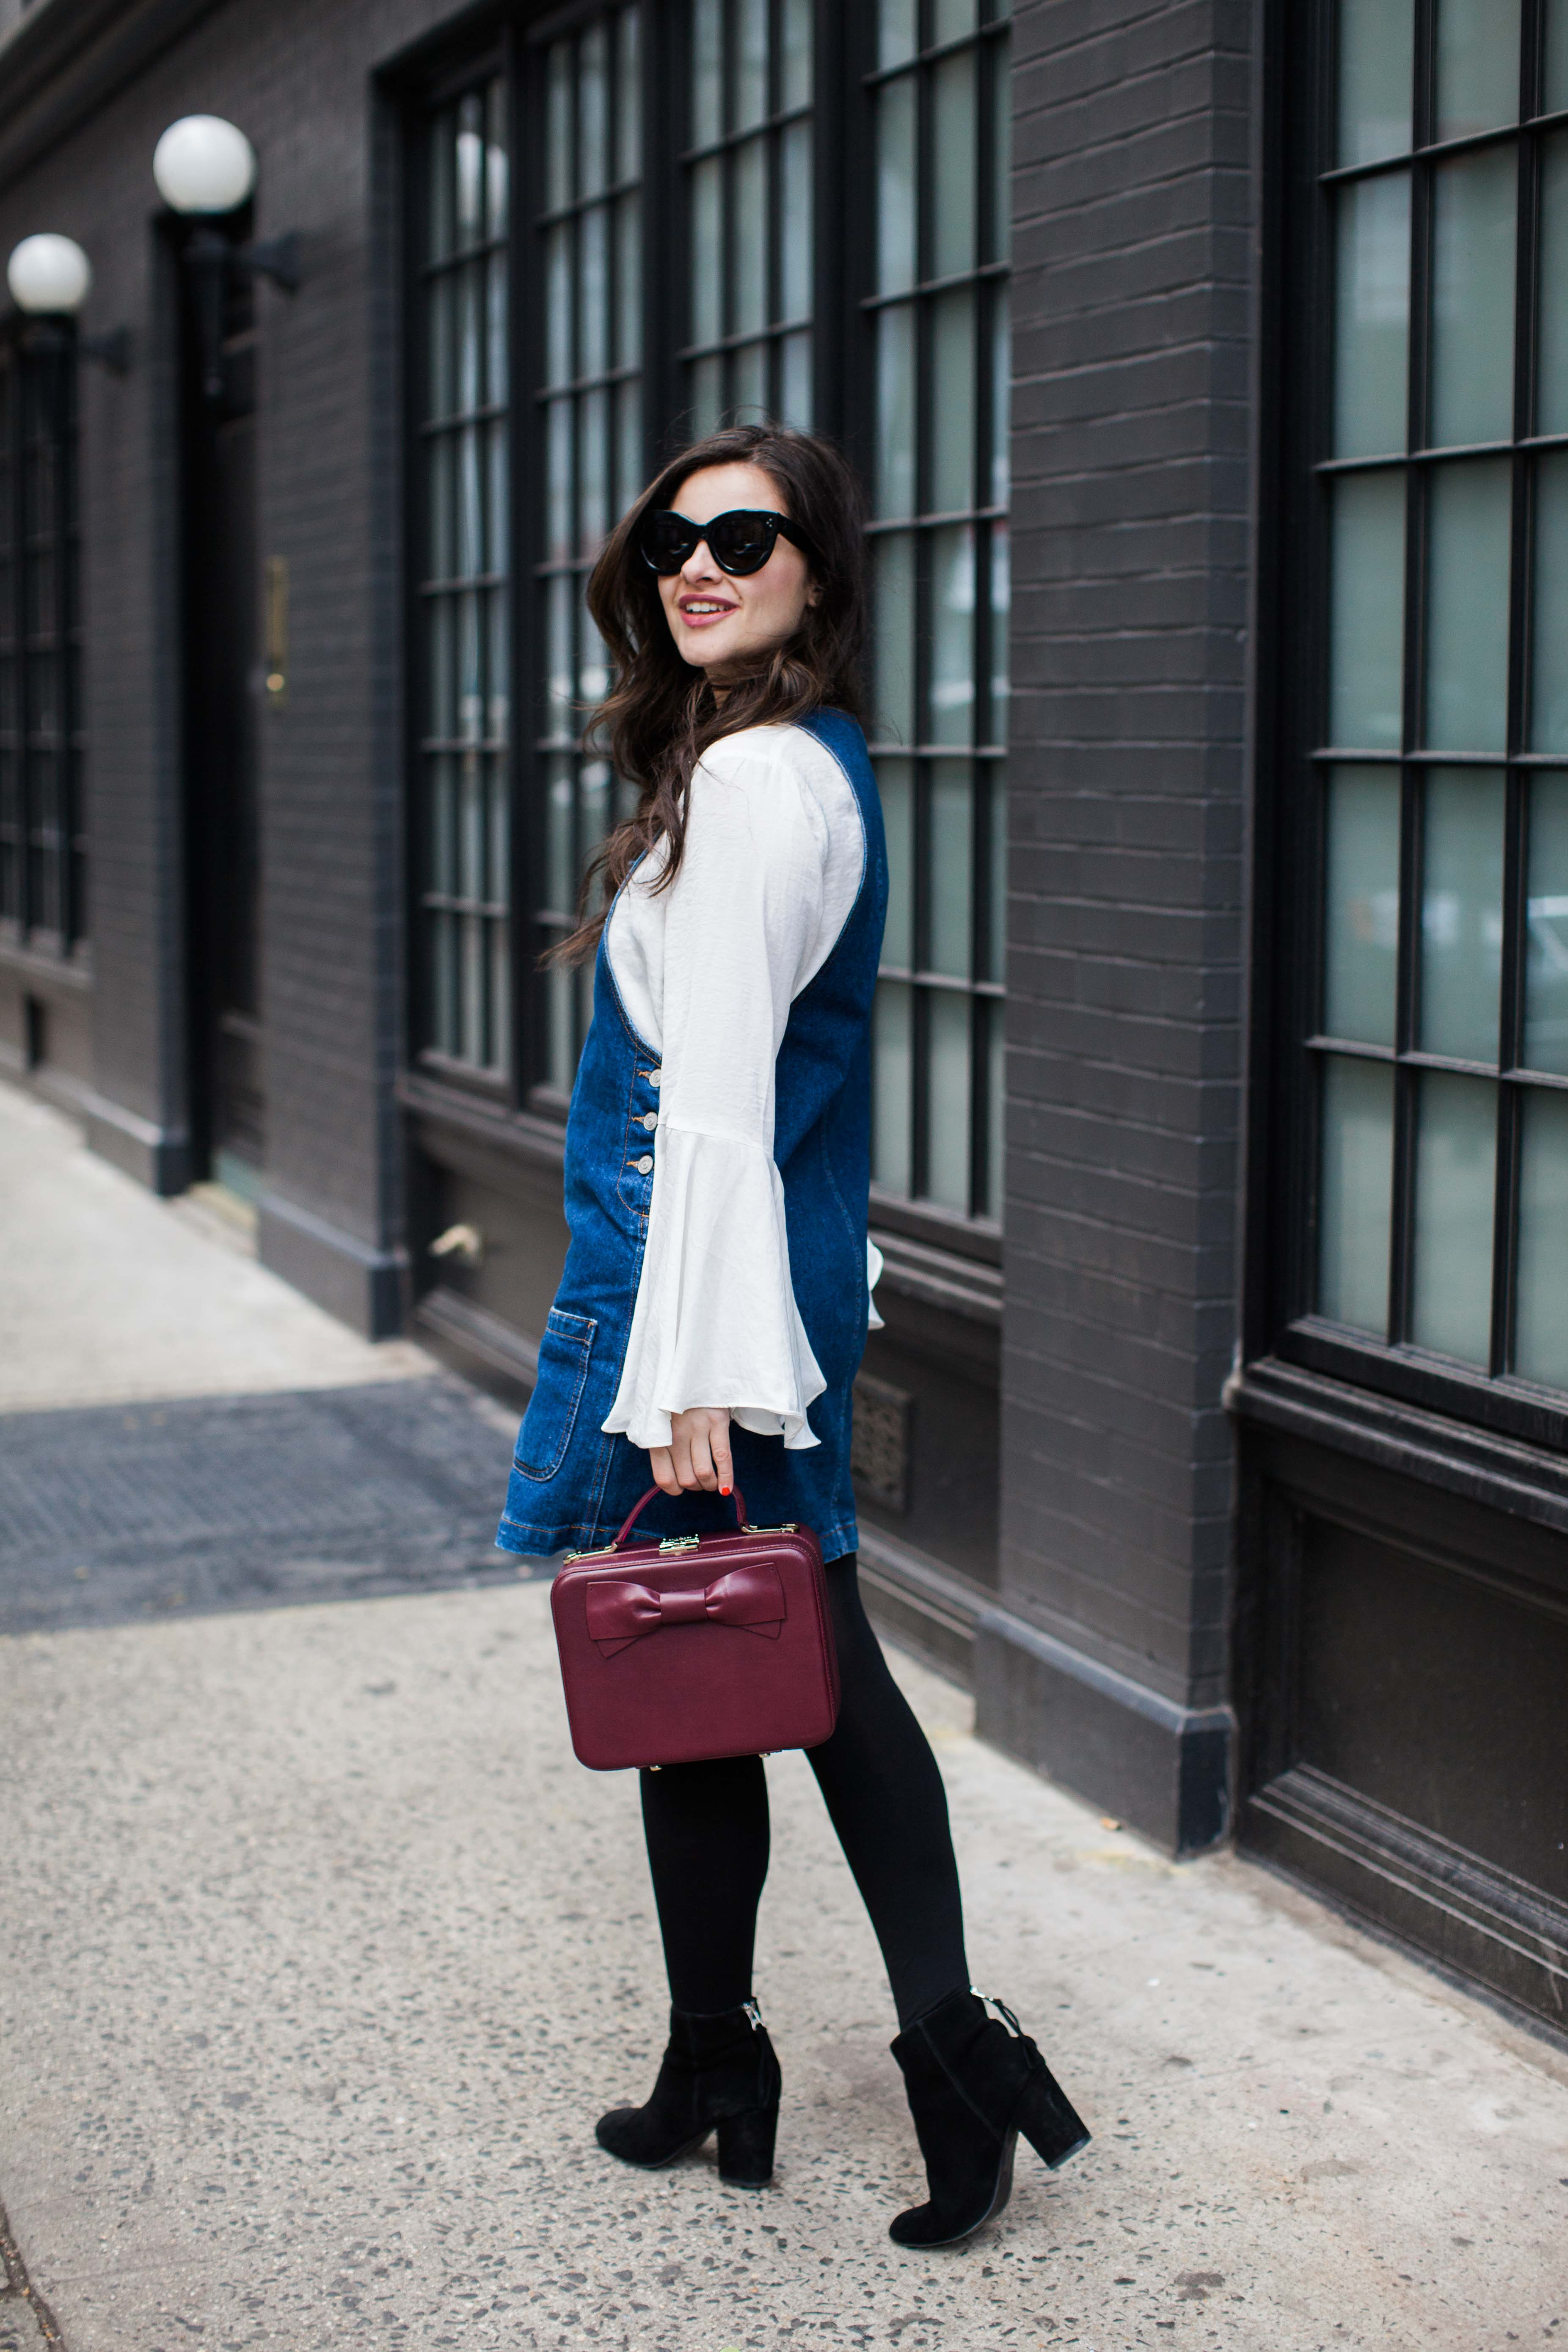 The Bell Sleeve Top | How I Re-wear My Favorite Pieces by fashion blogger Dana from Pink Champagne Problem